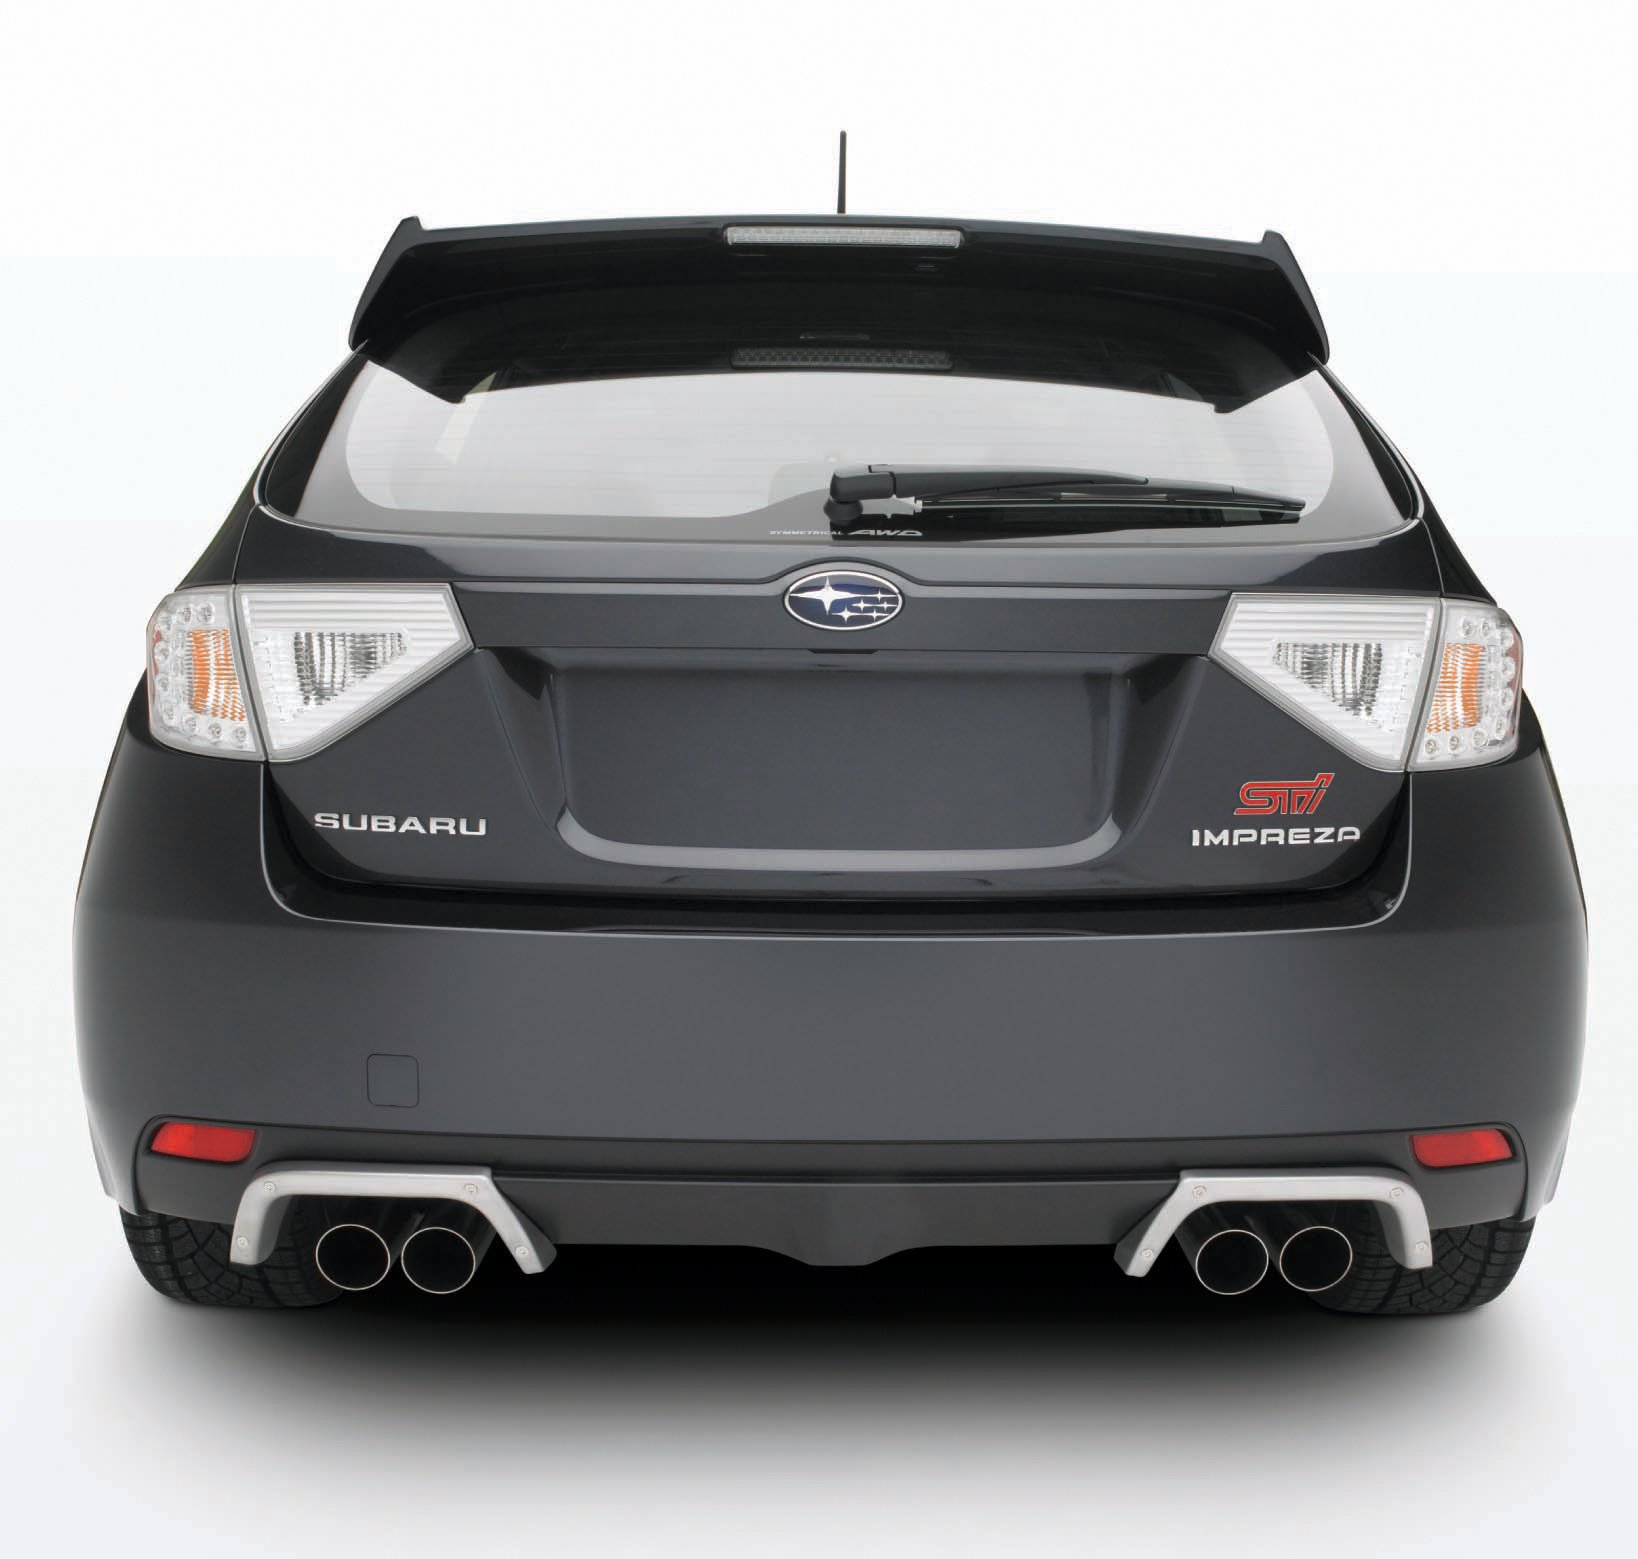 Genuine Subaru Impreza Exhaust Finishers by Subaru